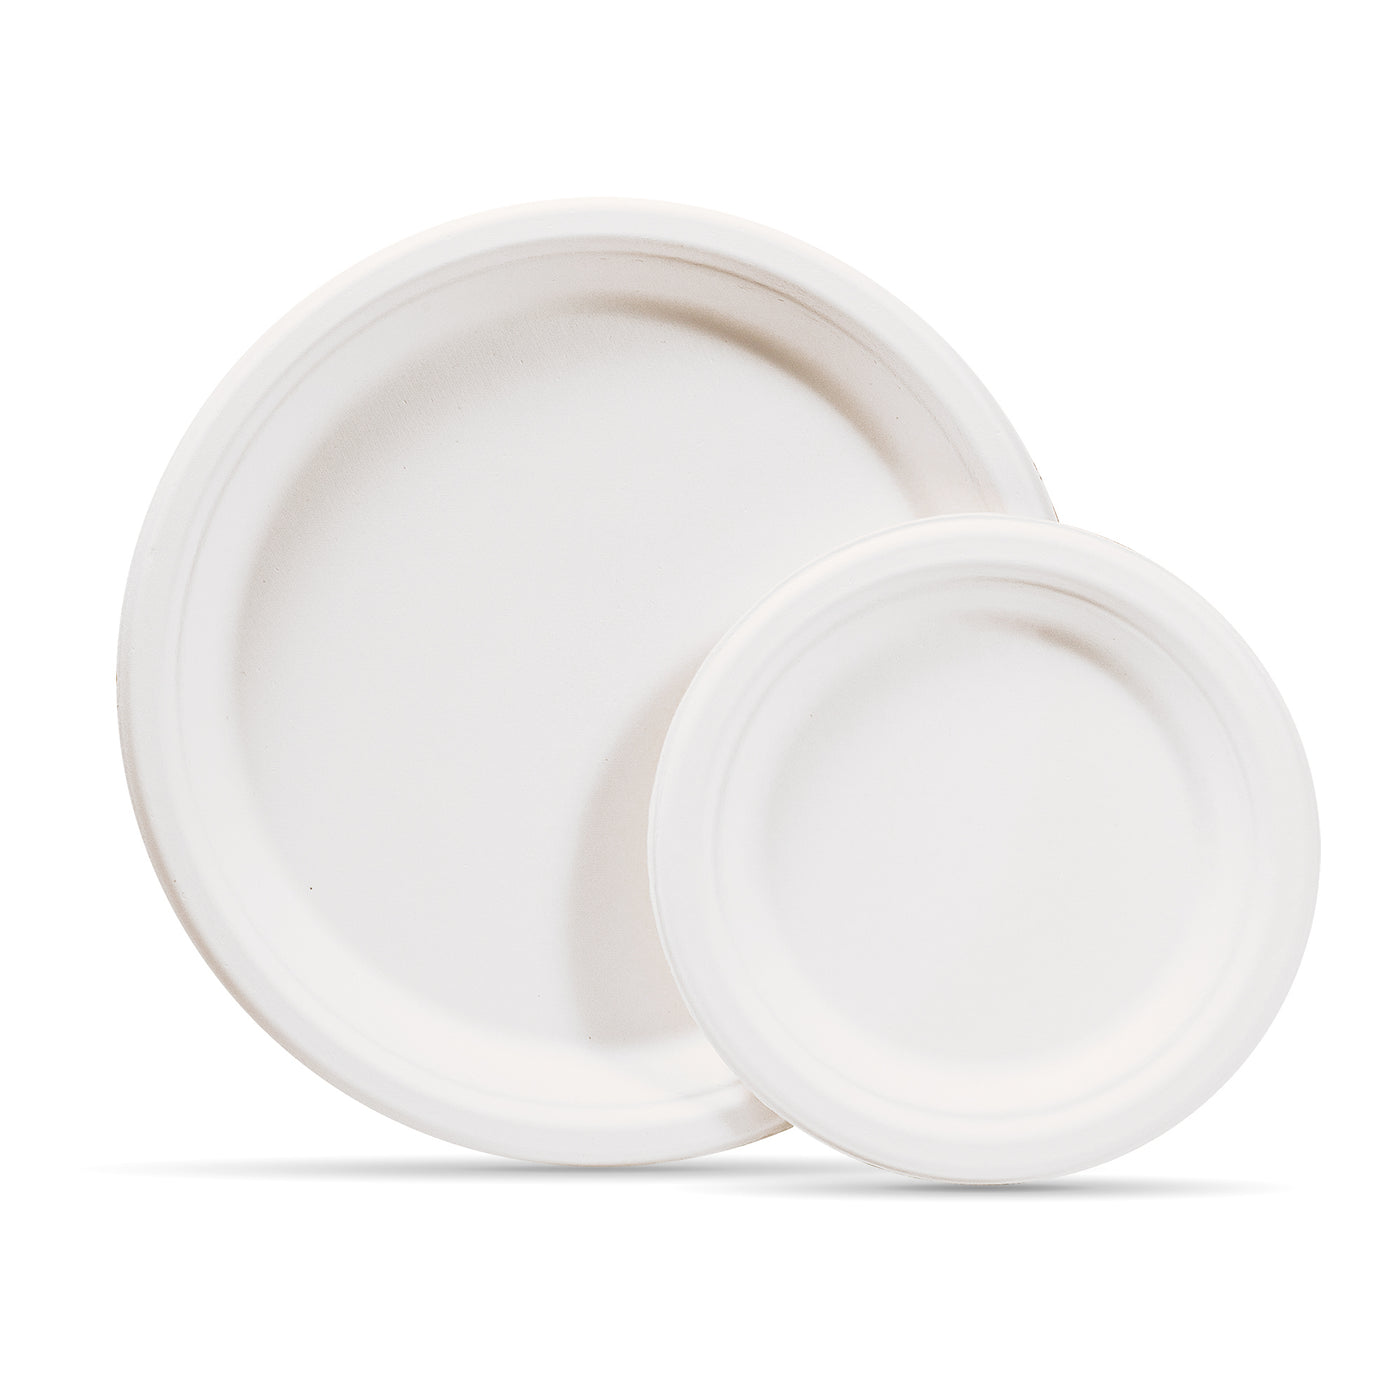 dessen Disposable White Round Hard Plastic Plate for Petrol/&Woodcutting Chain Saw Garden